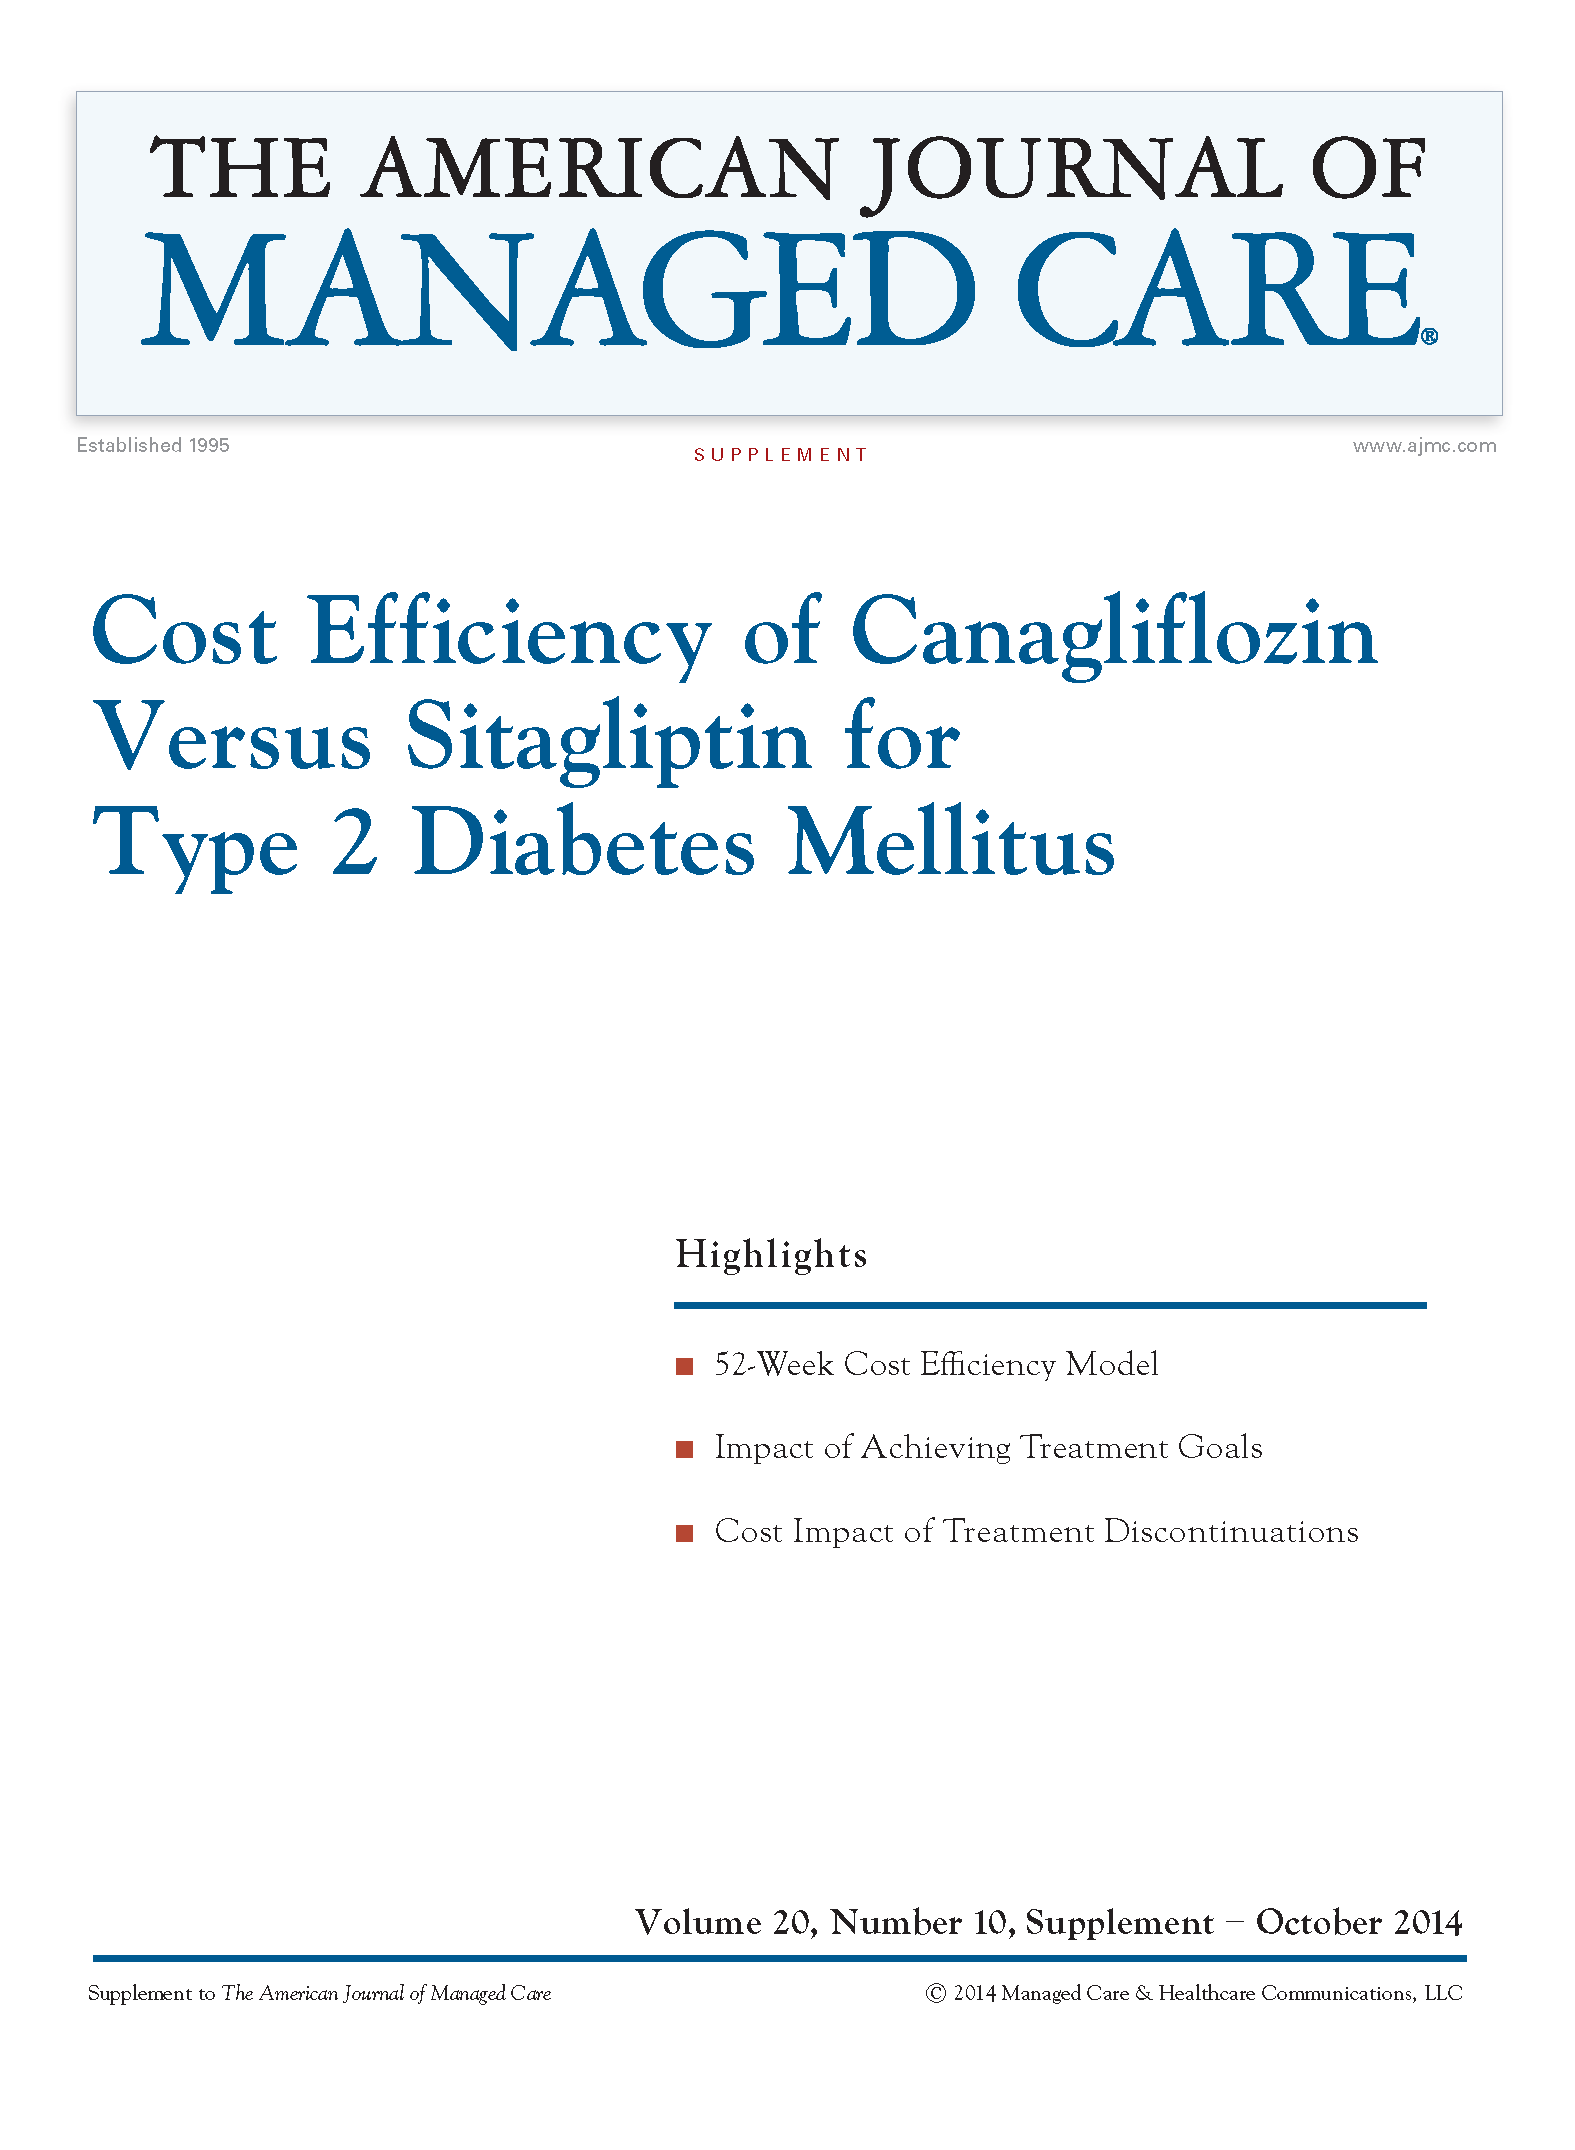 Cost Efficiency of Canagliflozin Versus Sitagliptin for Type 2 Diabetes Mellitus